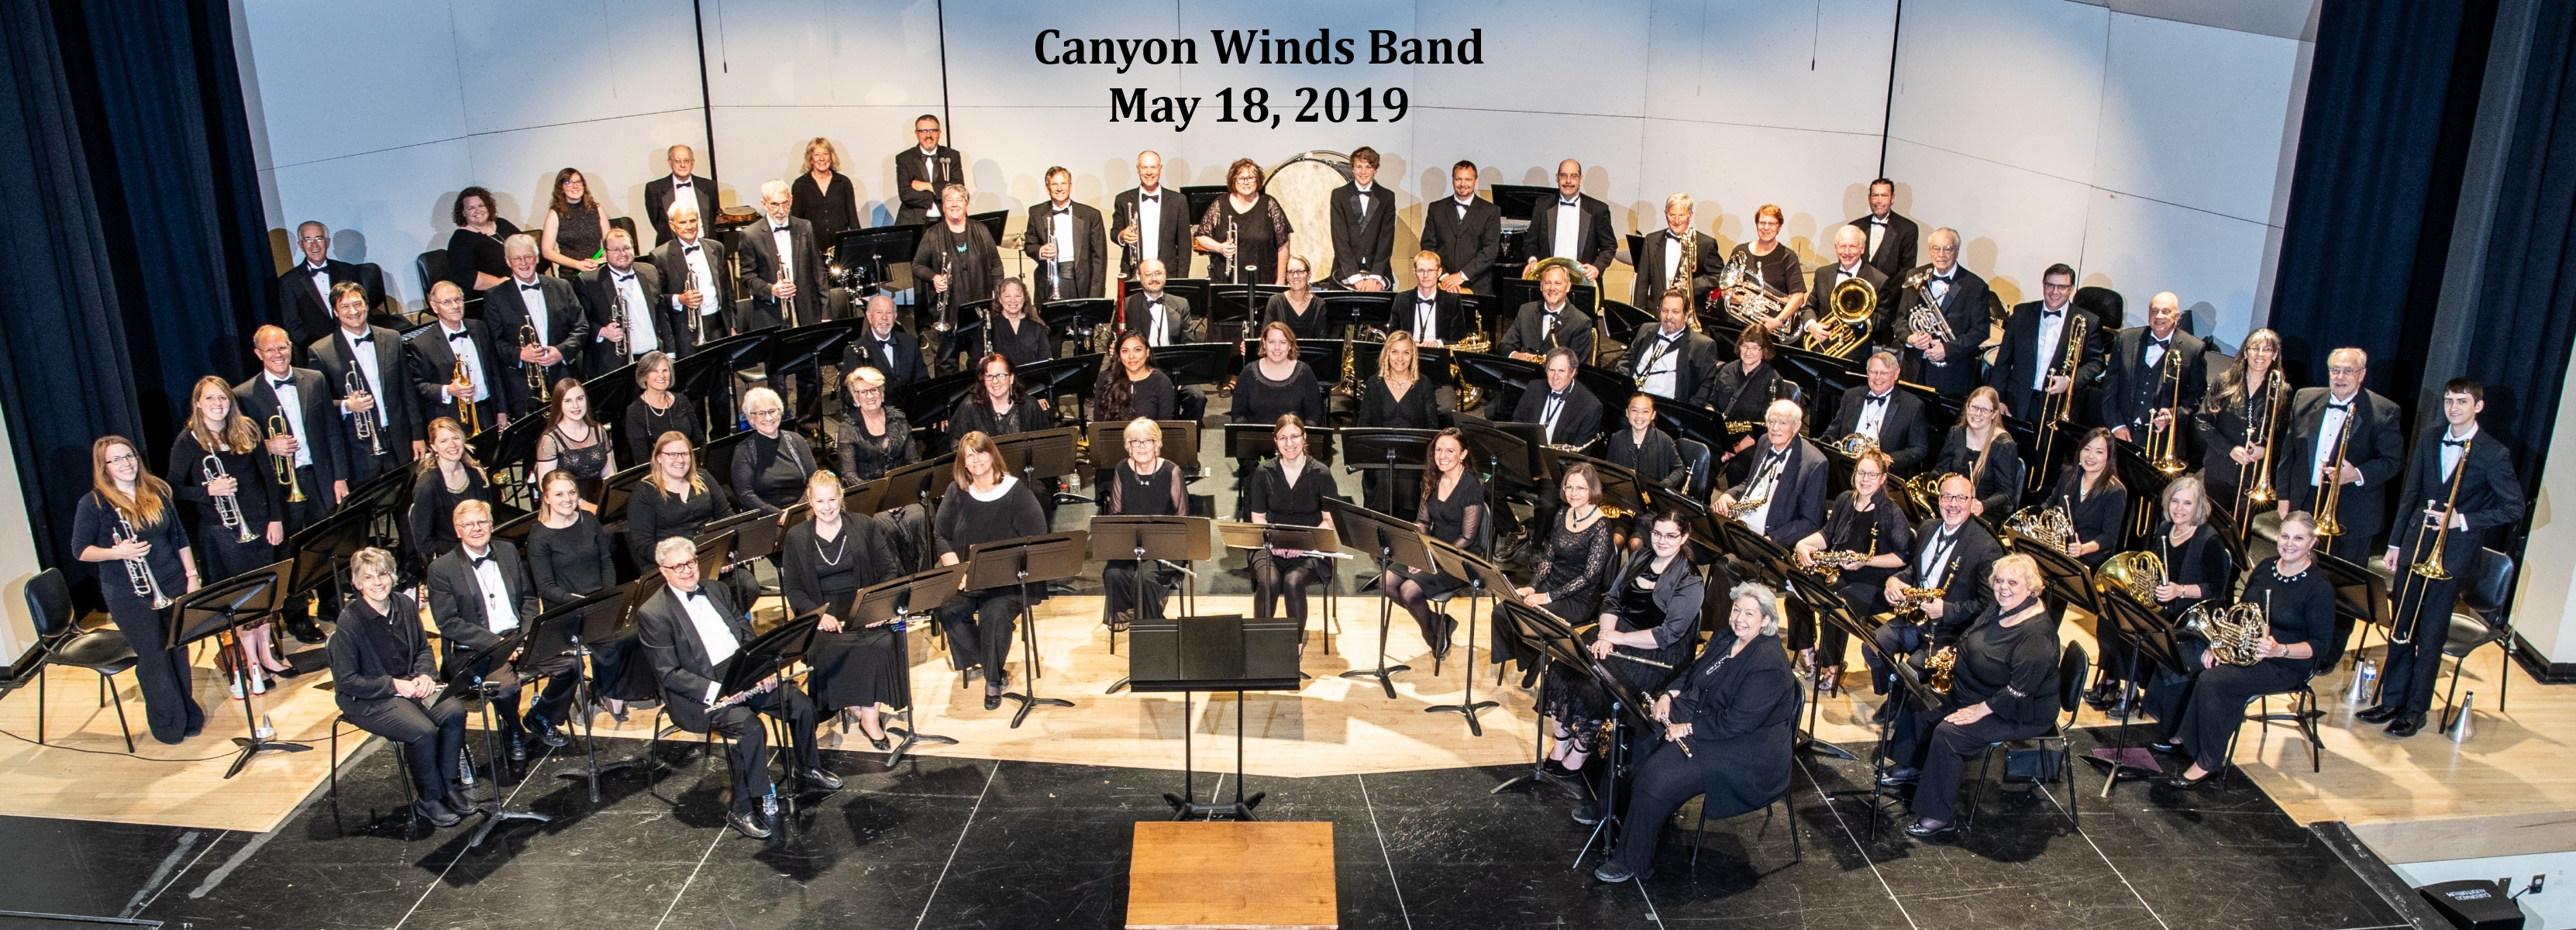 Canyon Winds Personnel from May, 18, 2019  Concert